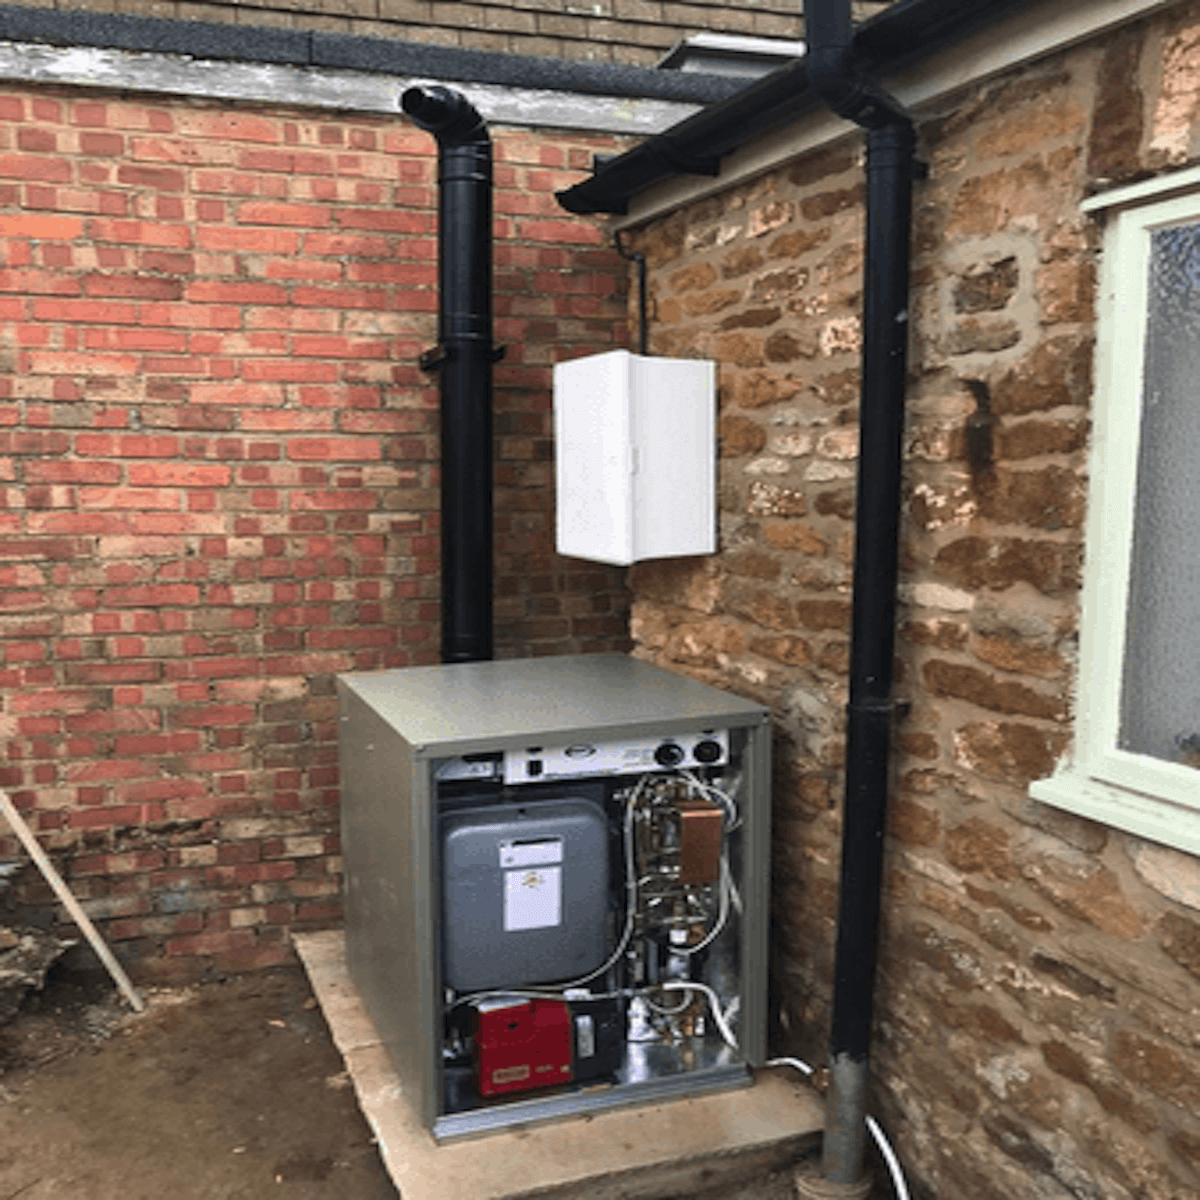 Installation new oil boiler Swerford OX7-Oxfordhsire